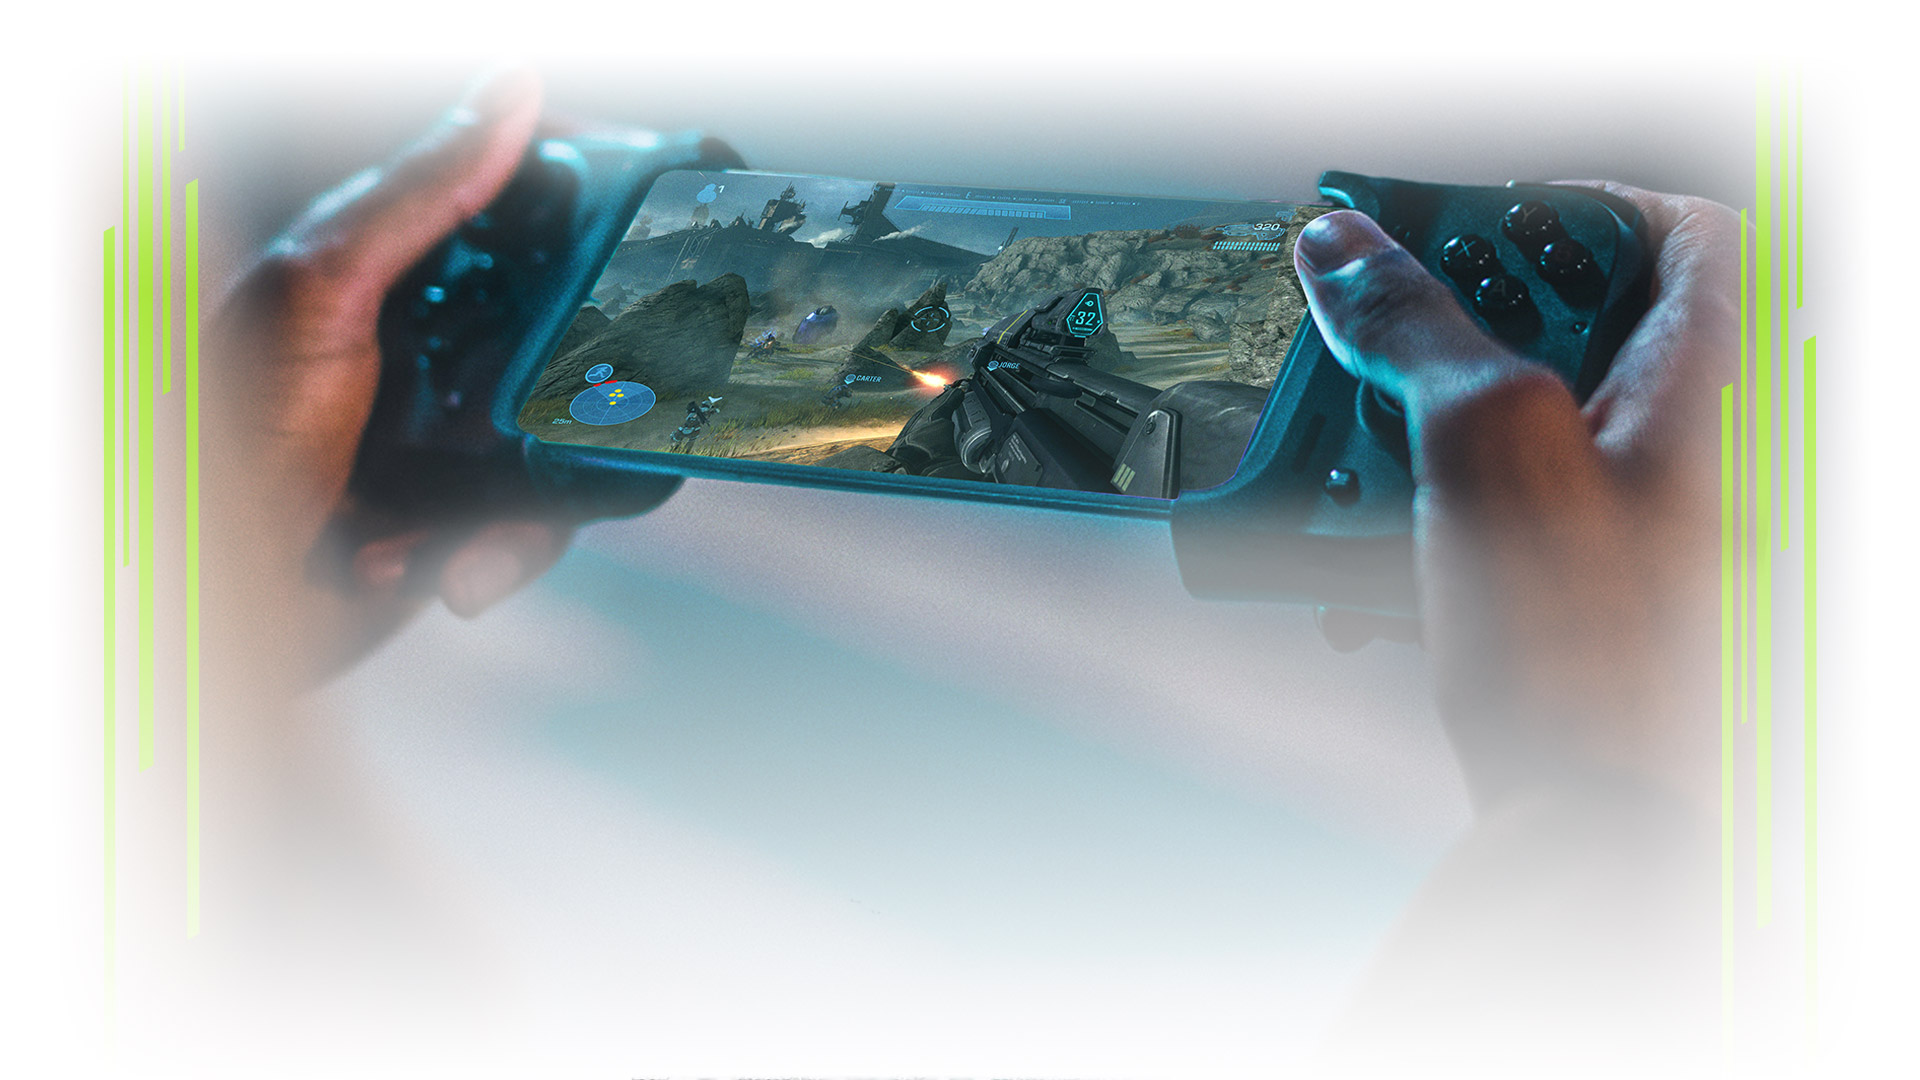 A Razer Kishi controller attached to a mobile phone showing Halo: Reach gameplay